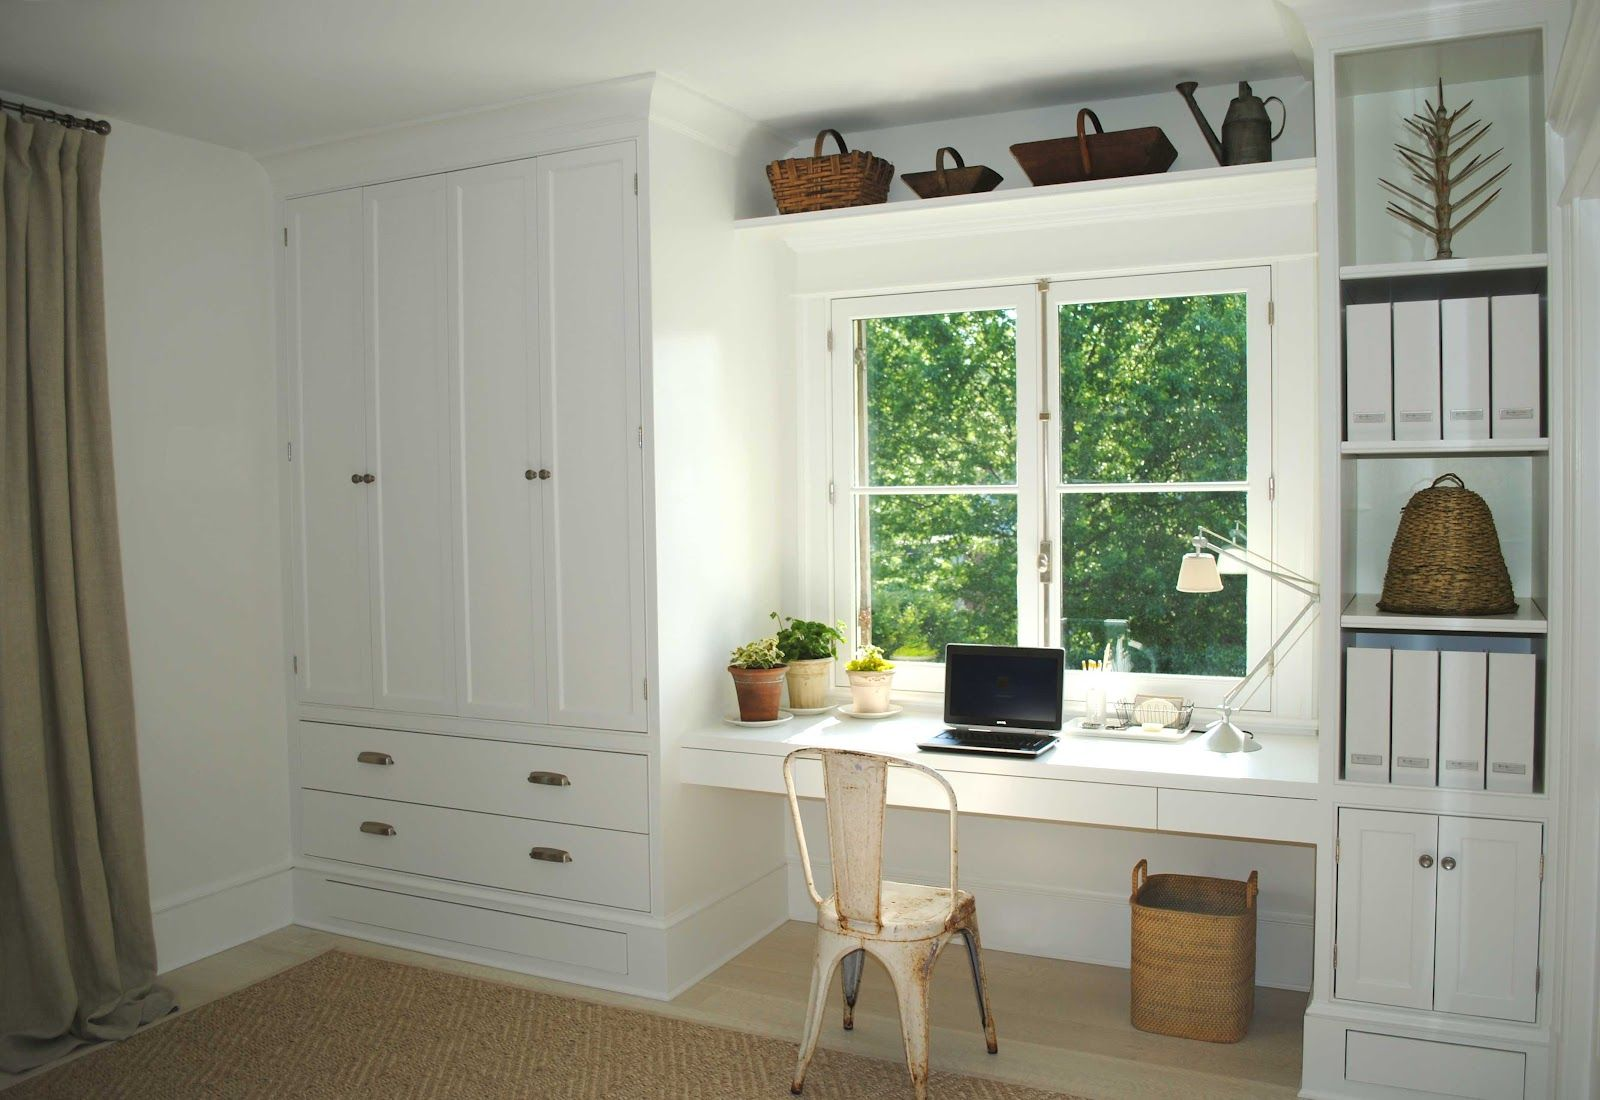 Master Bedroom Built In Closet With Desk Ideas My New Home Office With Lots Of Storage The